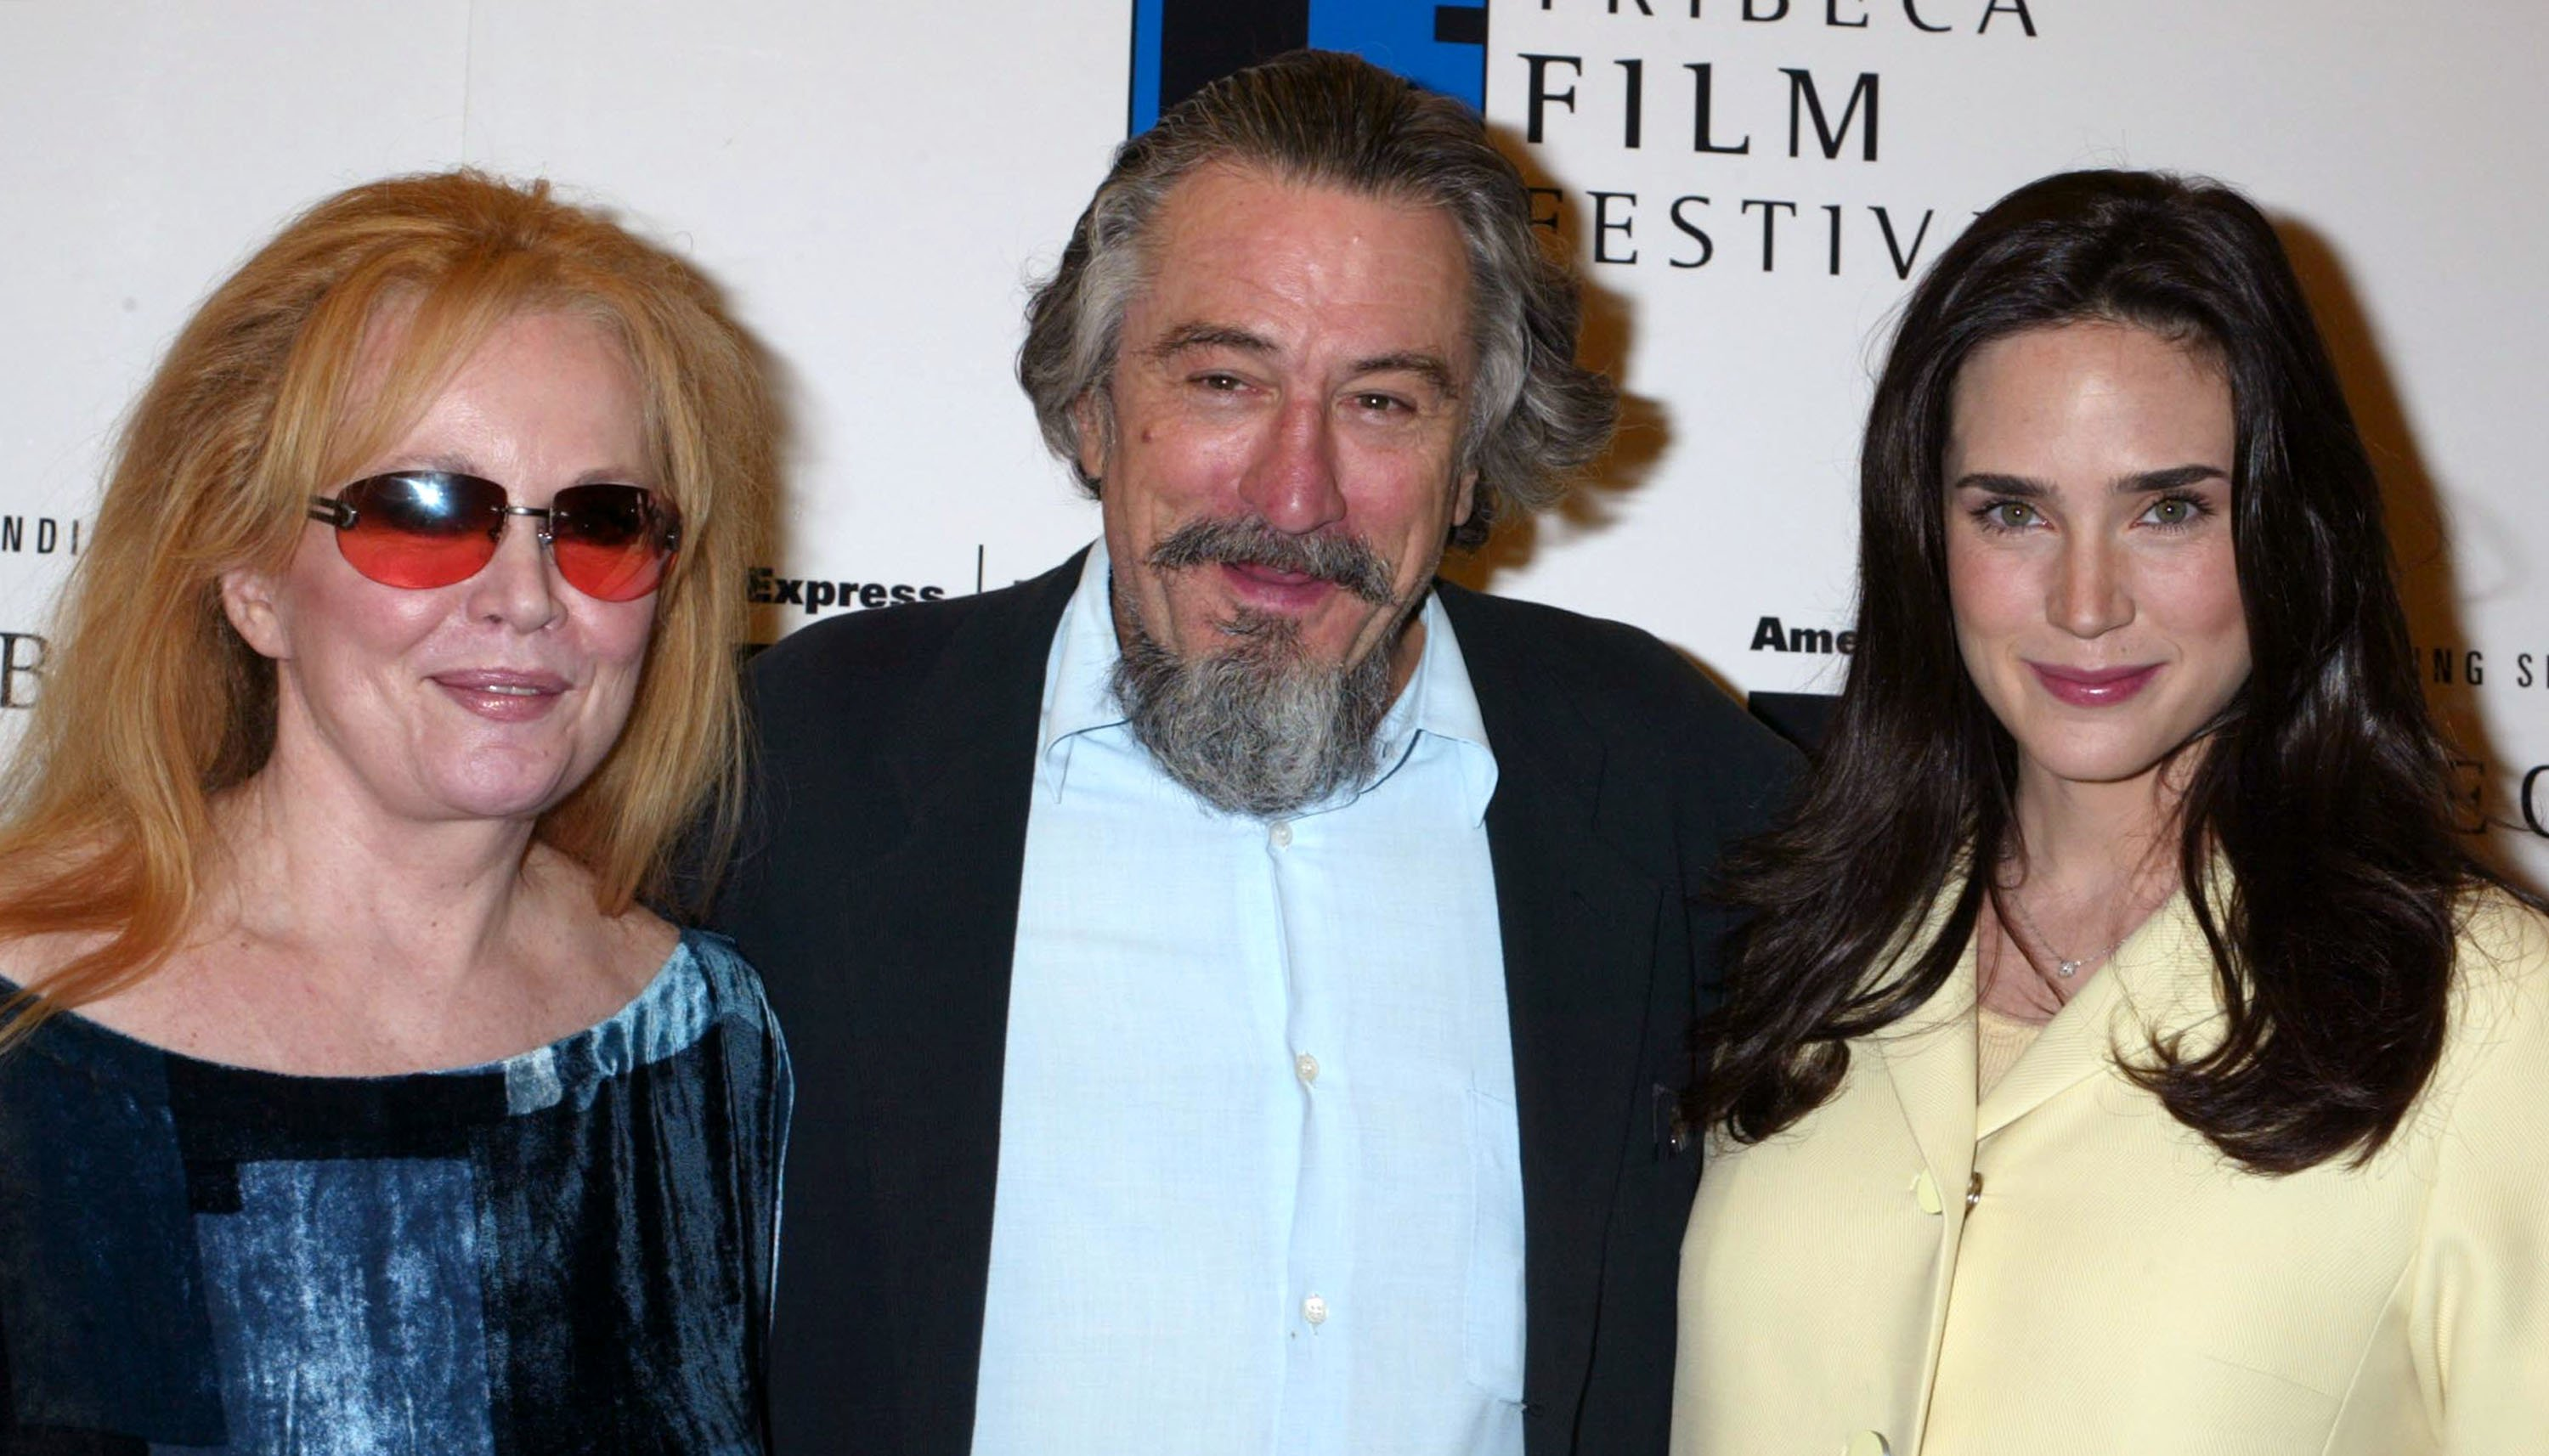 Tuesday Weld, Robert De Niro and Jennifer Connelly at 2003 Tribeca Film Festival. | Source: Getty Images